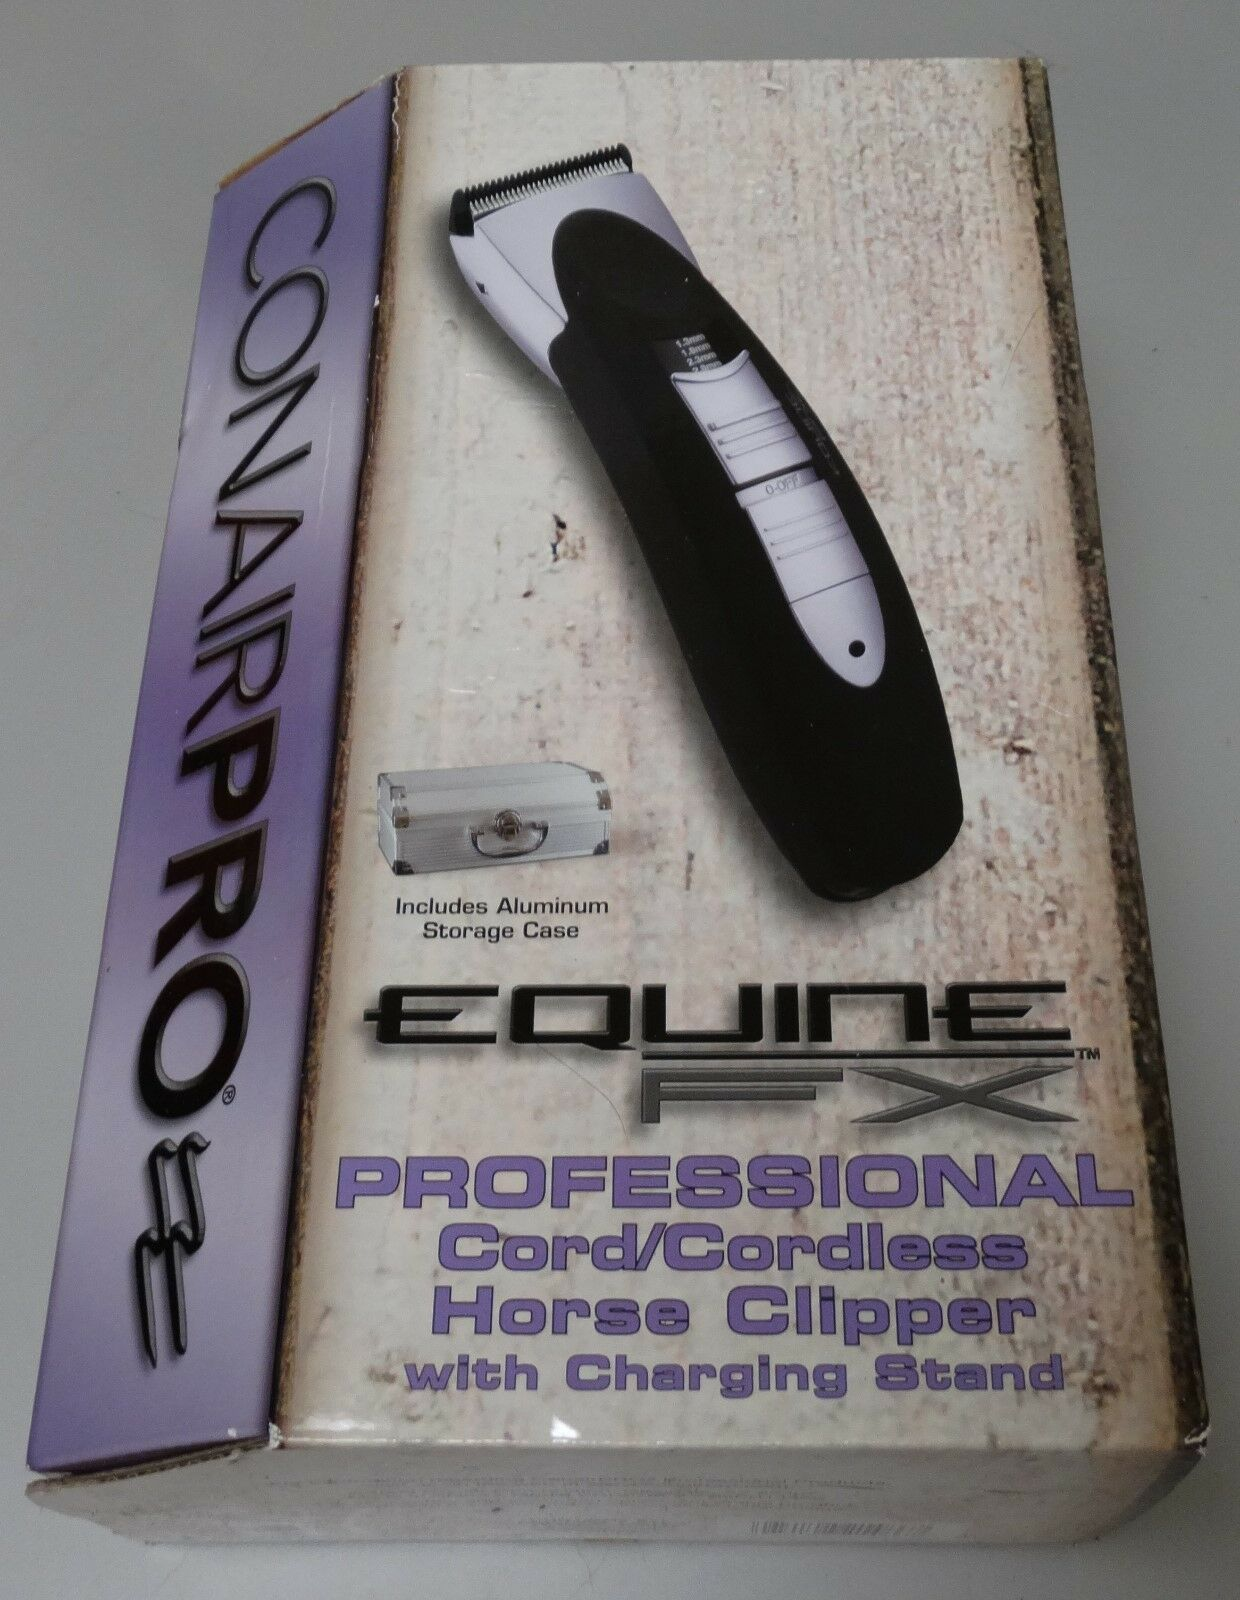 NEW Conair Pro Equine FX Professional Cord/Cordless Horse Clipper Charger Case